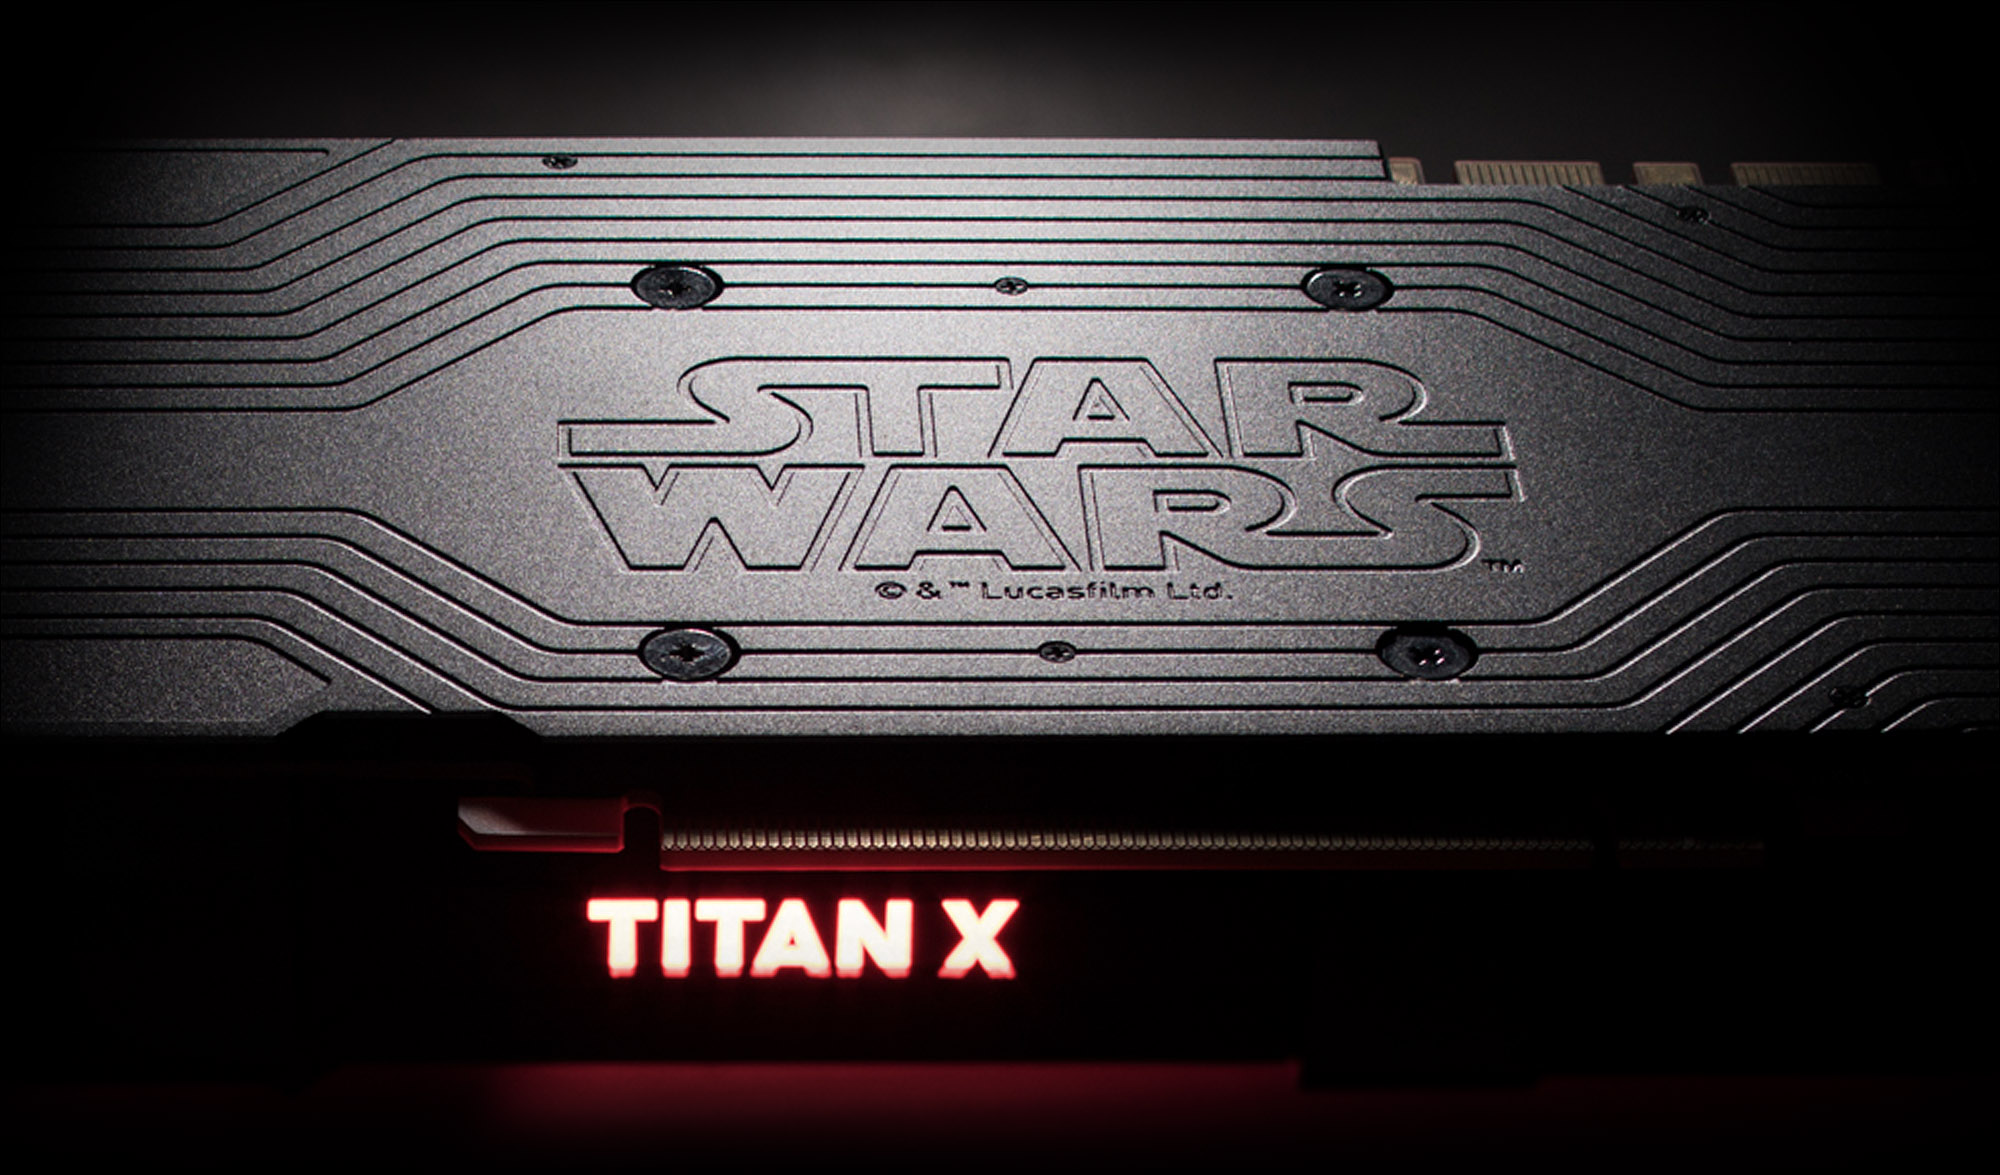 nvidia-titan-xp-ce-star-wars-galactic-empire-gallery-04.jpg